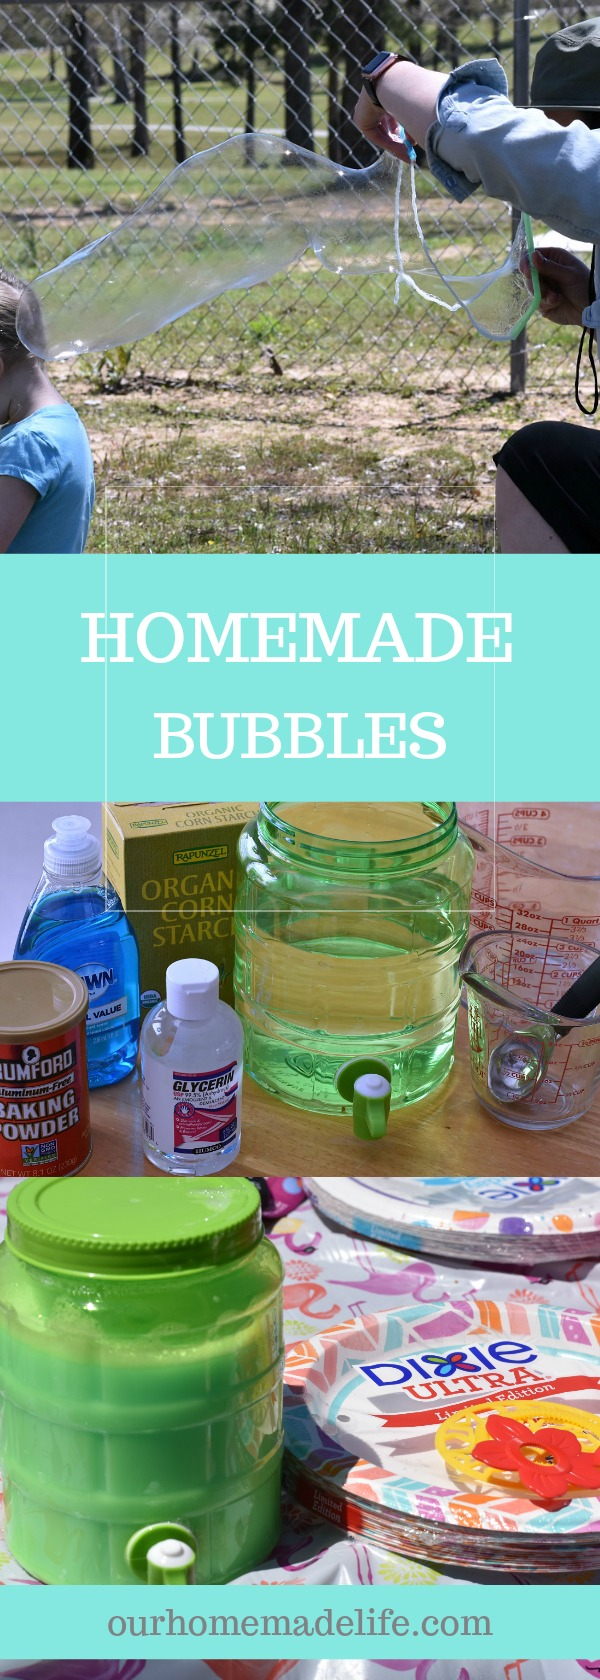 Homemade Bubbles with Simple Kitchen Ingredients - OurHomemadeLife.com